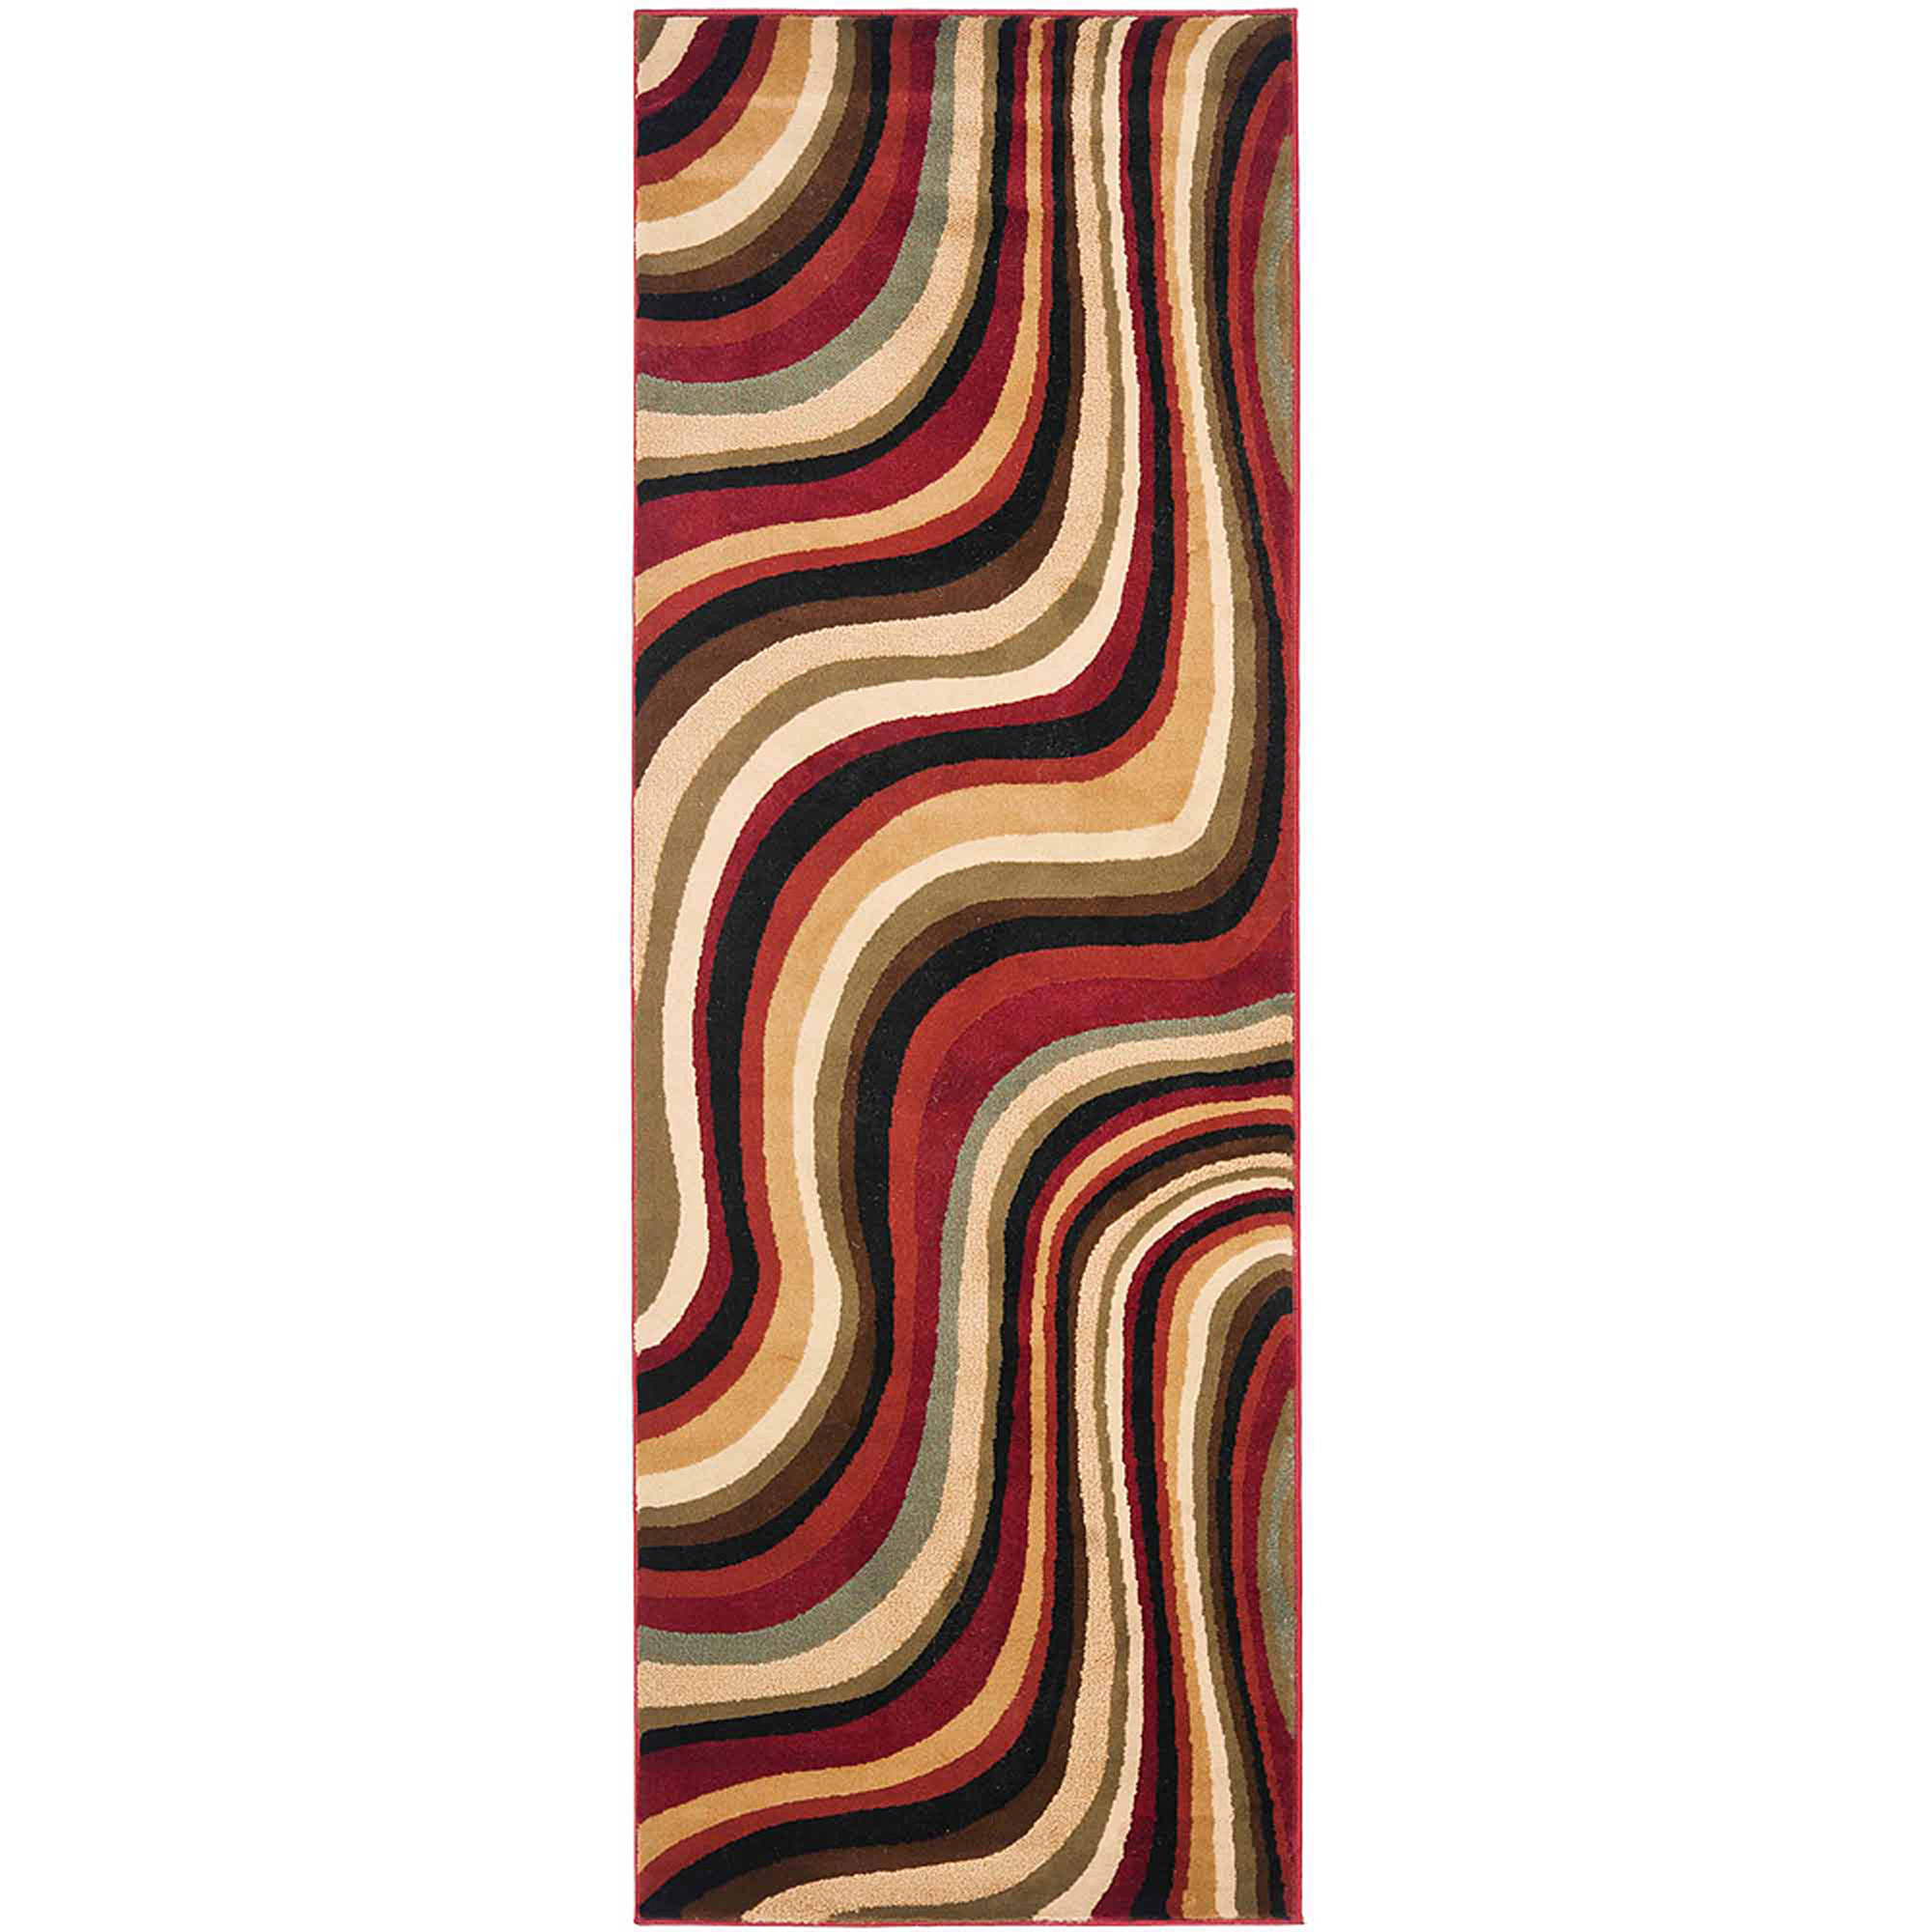 Safavieh Art Deco Alice Polypropylene Runner Rug, Red and Multi-Color